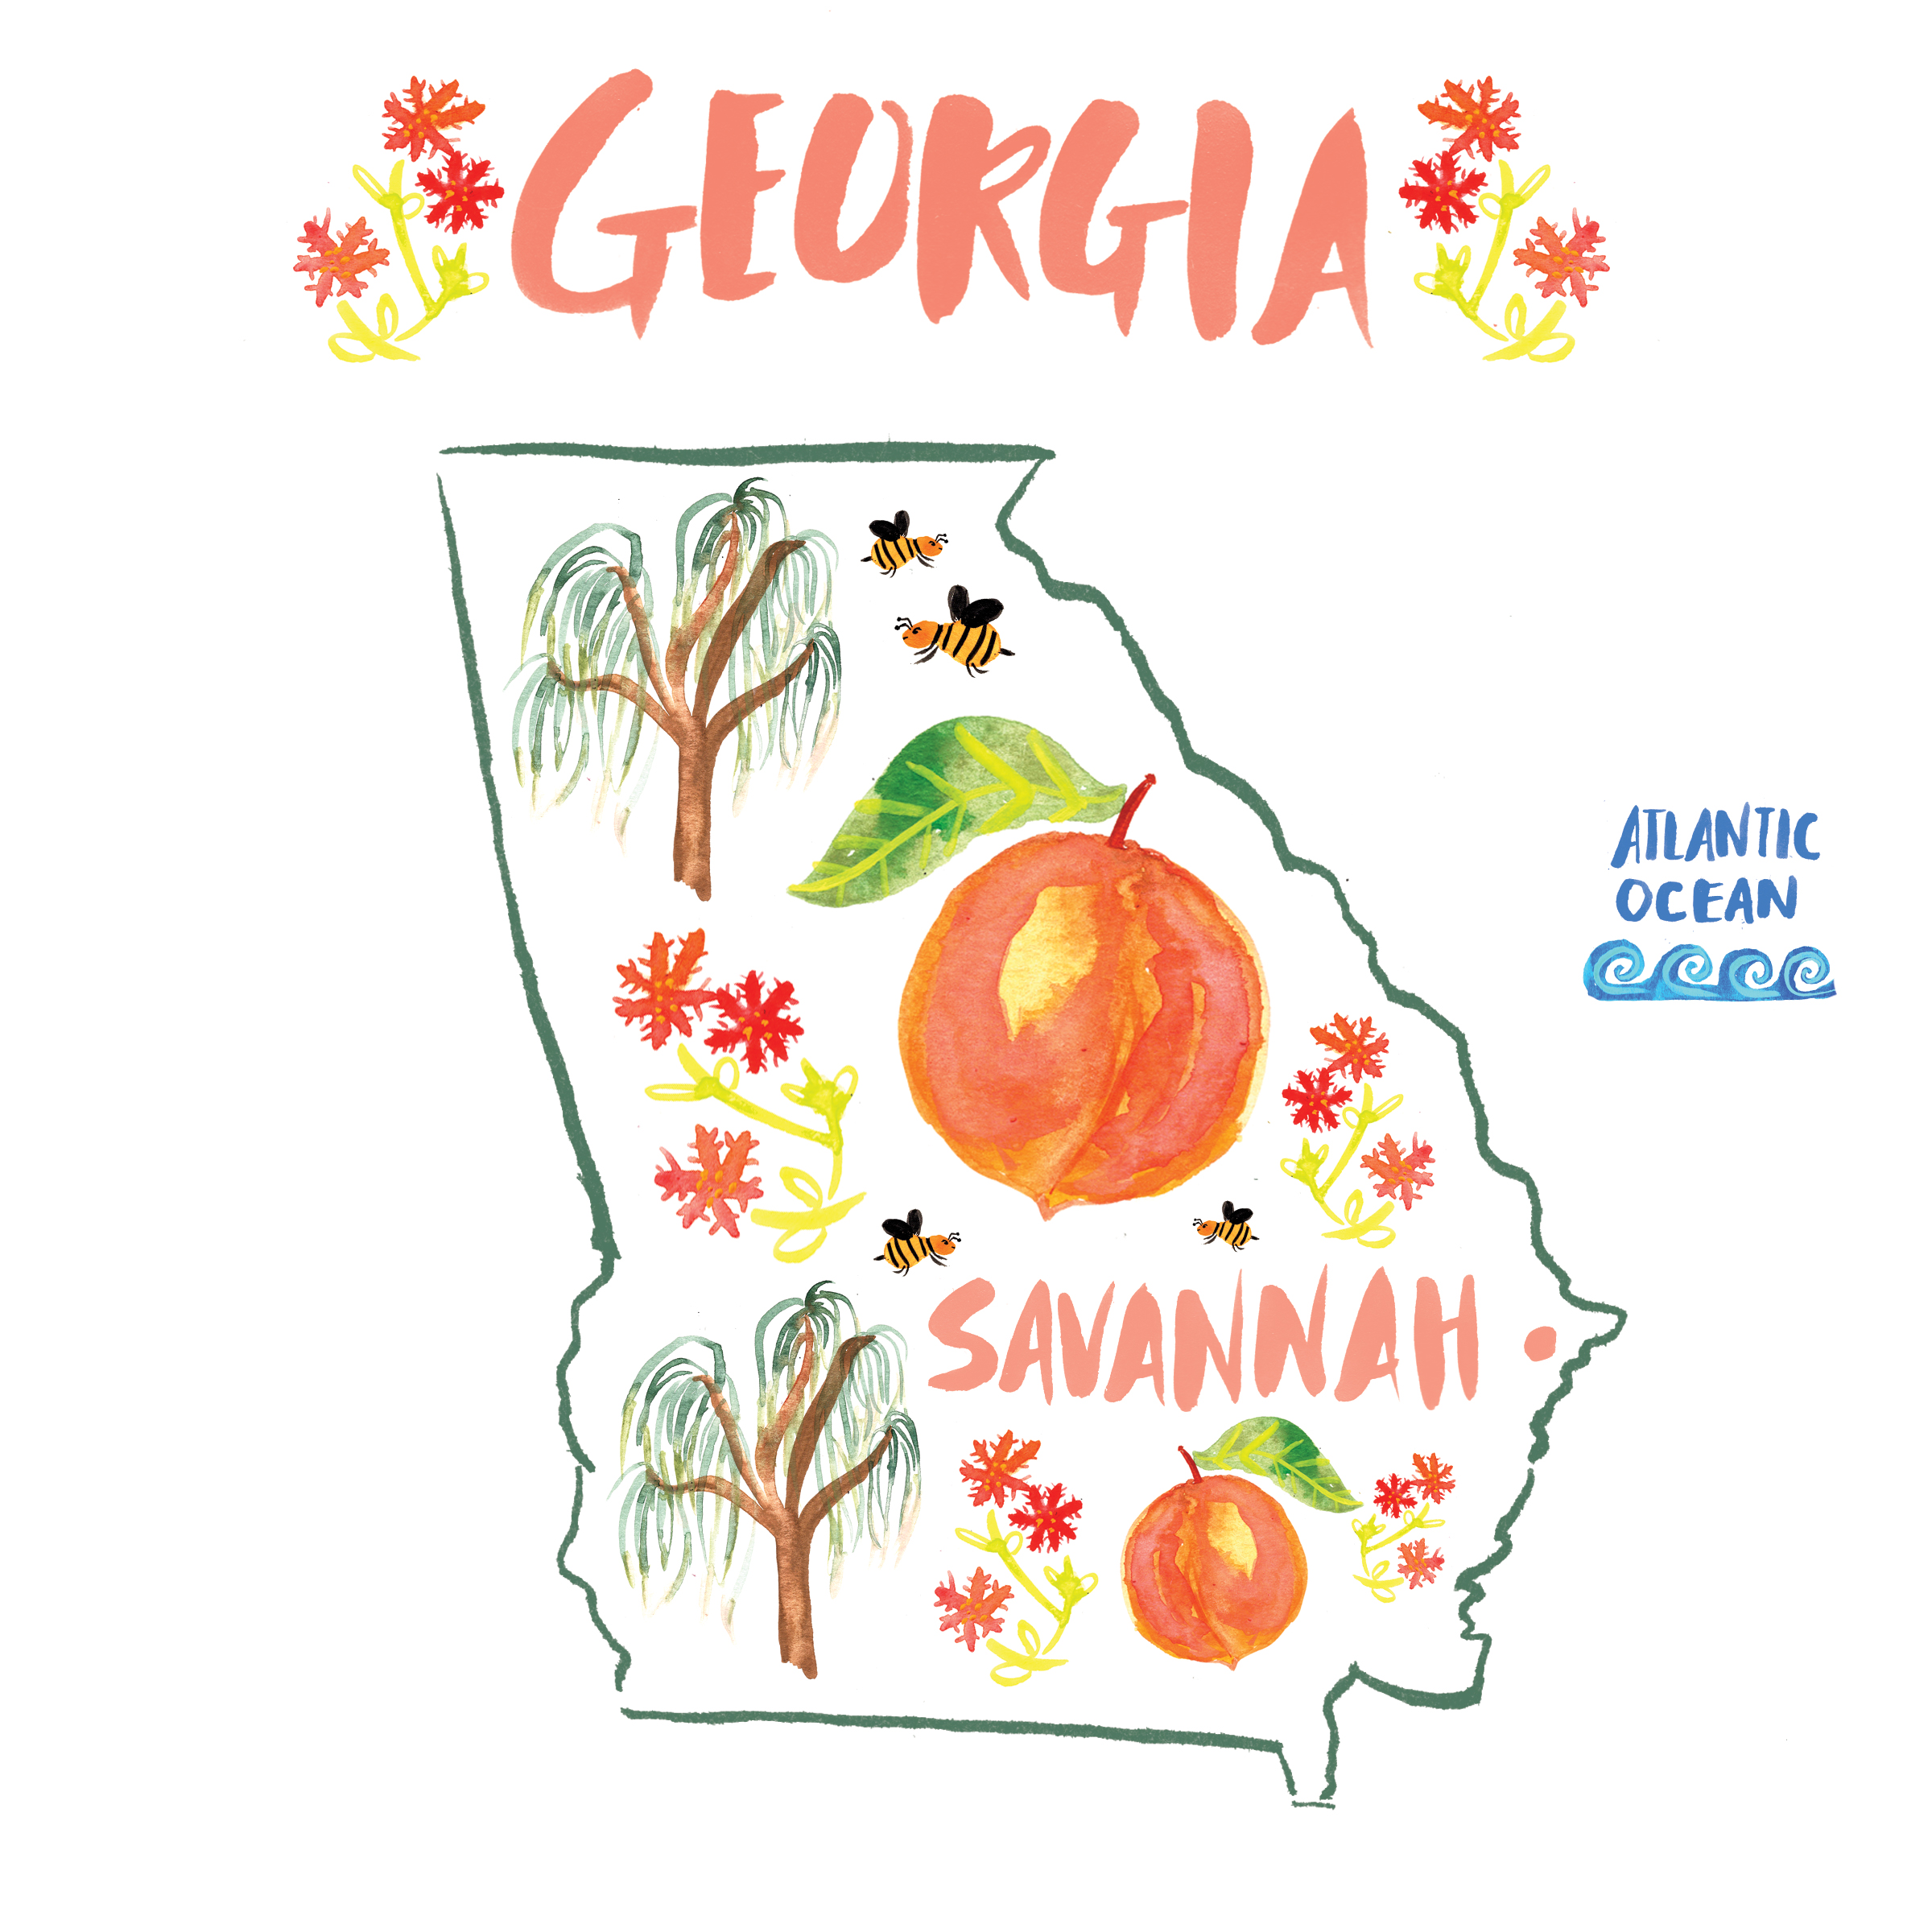 GEORGIA - Sweet Savannah! 🍑 I knew I was going to love your southern charm and I knew I was going to be captivated by your lovely Spanish moss trees! 😍 I stayed in a bed and breakfast right by the river and in great proximity to everything I wanted to see. I walked around with Stella (very dog friendly!) and got to see the campus of SCAD. I was thrilled to see a variety of works by artists thriving in their crafts. Next stop for me in Georgia will be ATL!PLACES: SAVANNAH